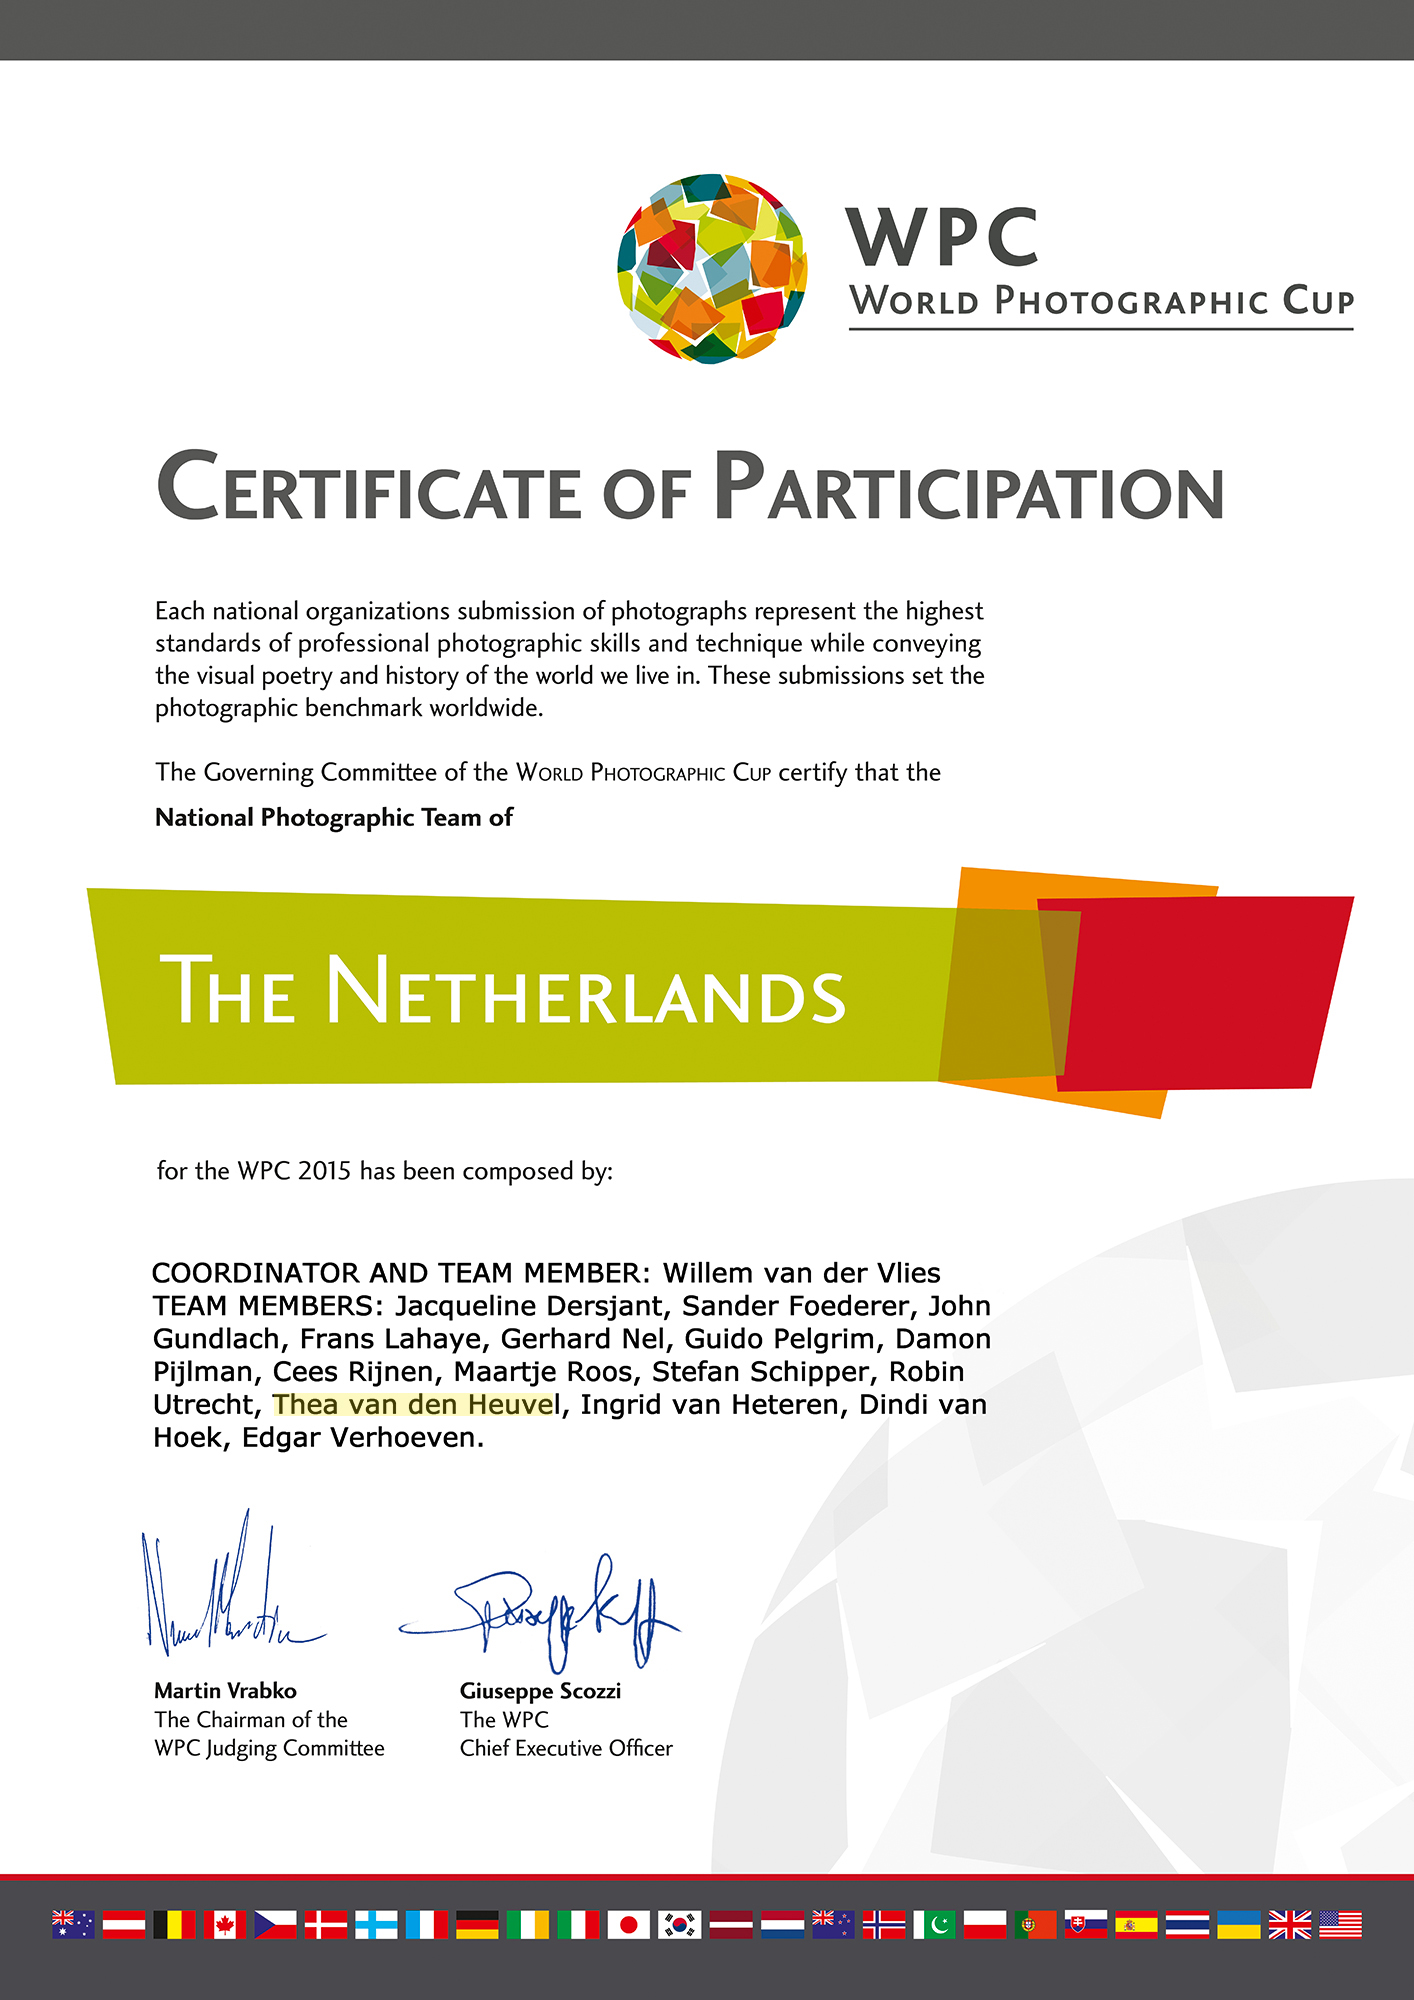 World Photographic Cup 2015